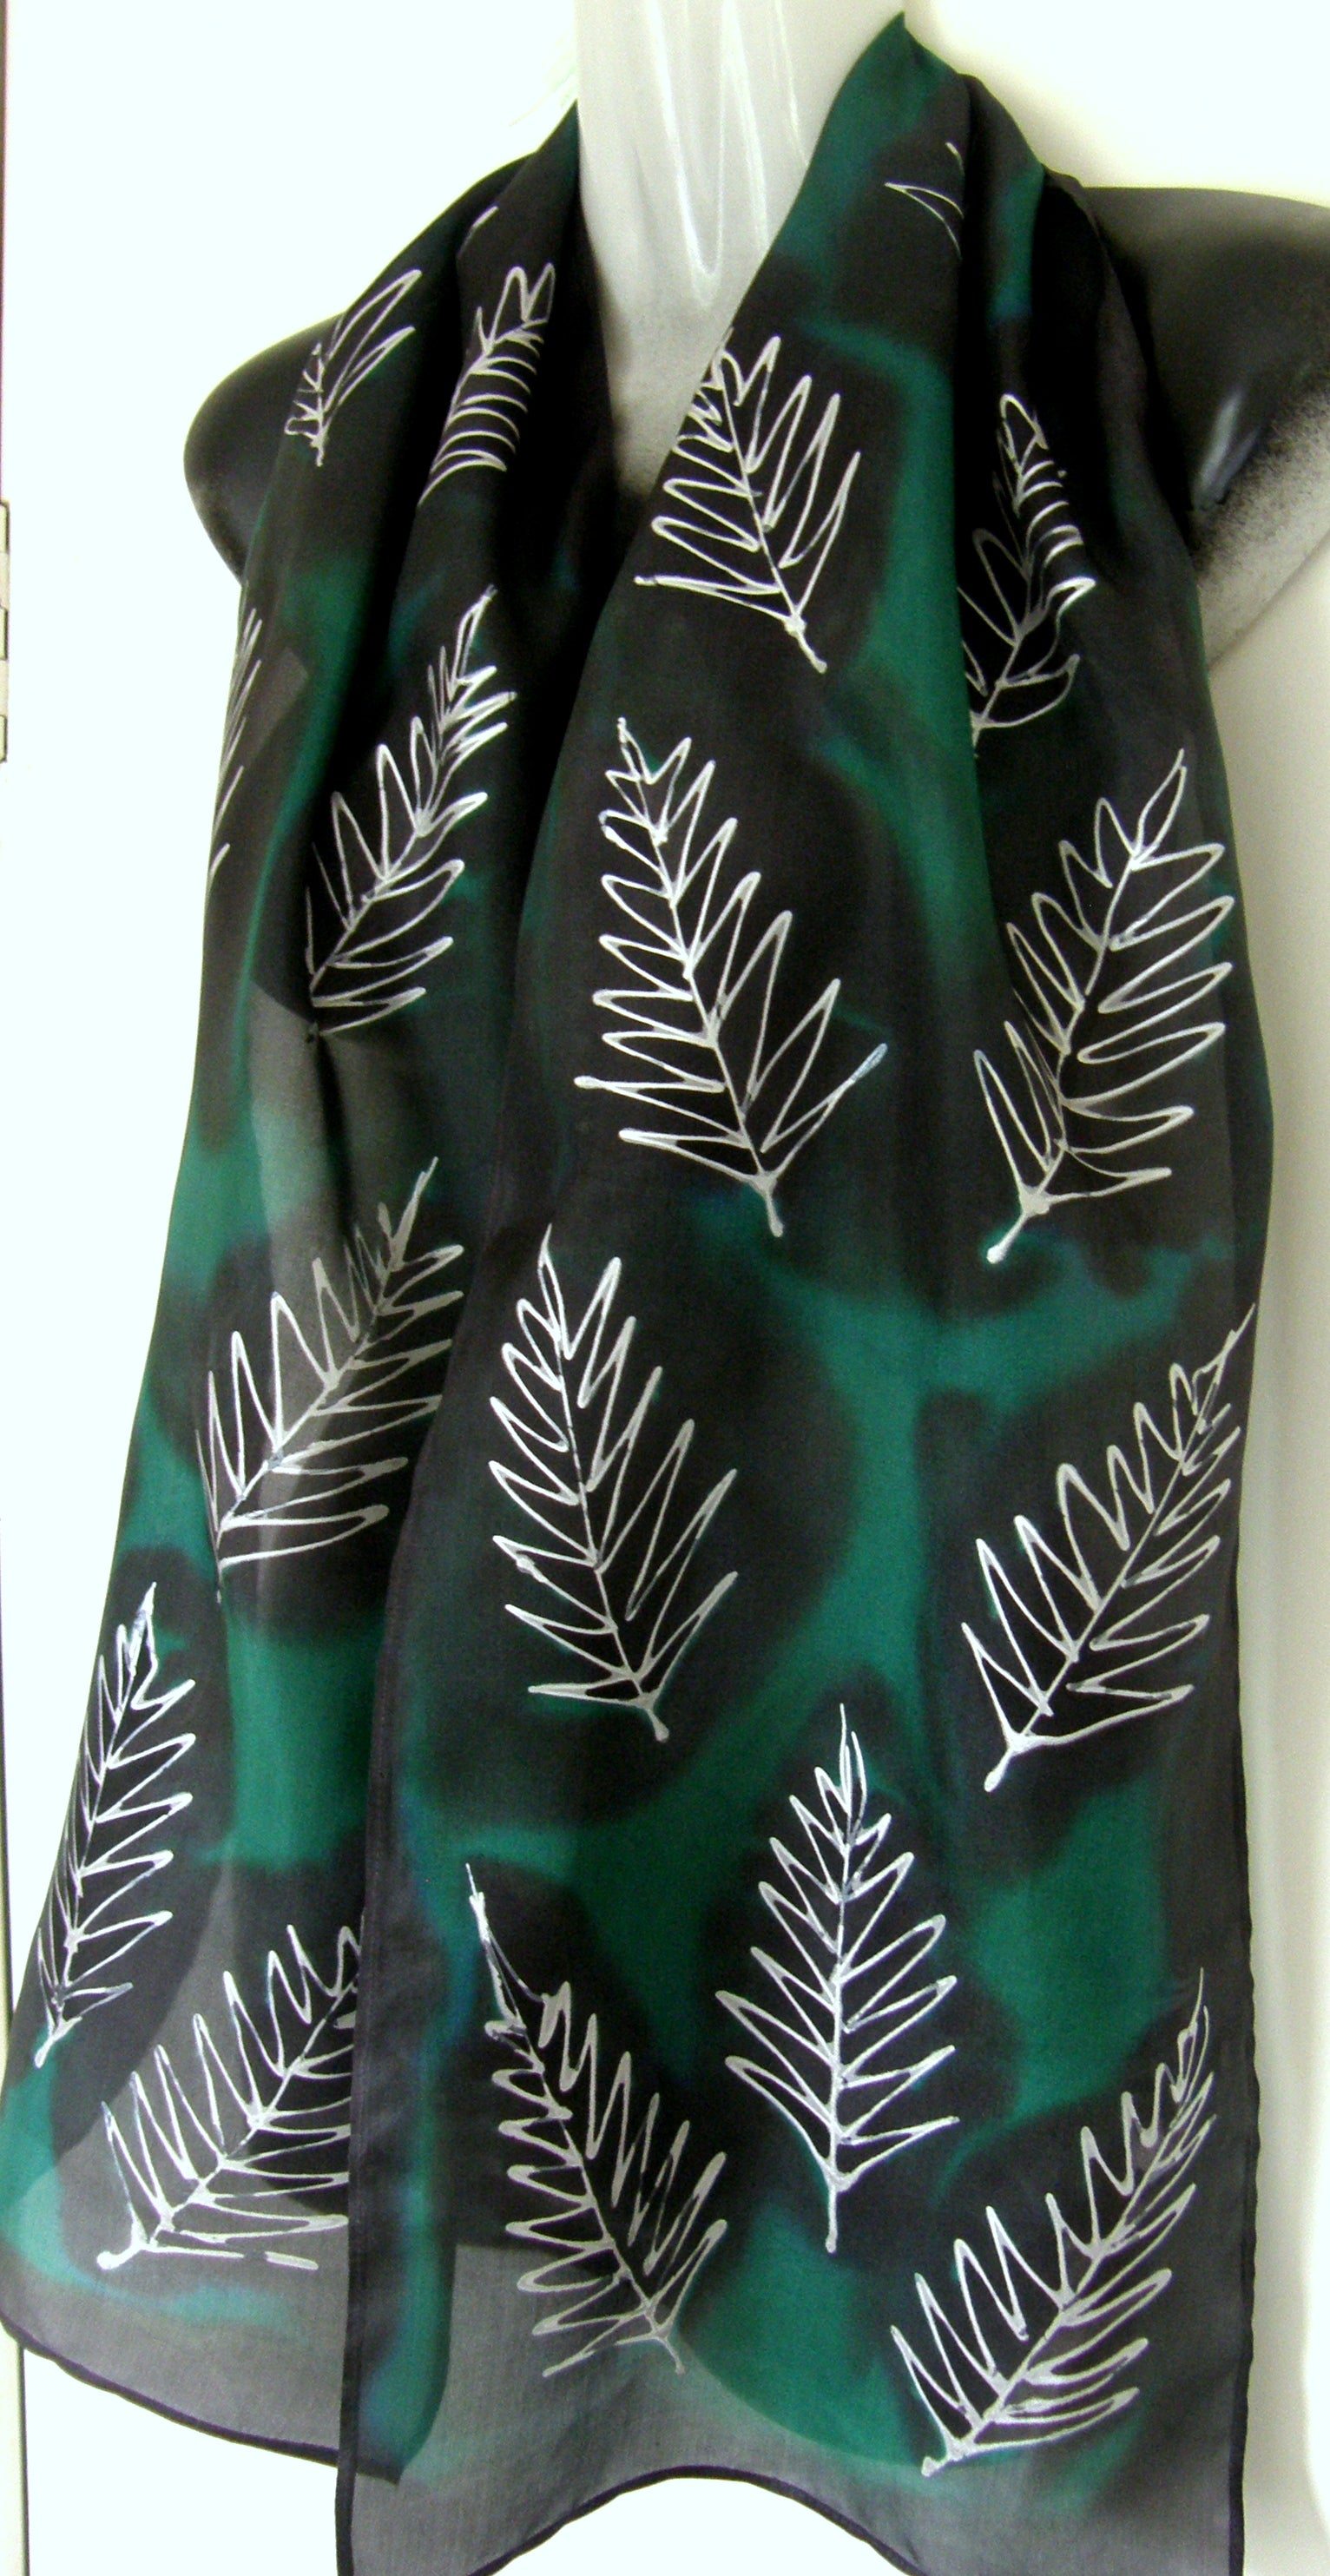 Silver Ferns in Green & Black - Hand Painted Silk Scarf - Satherley Silks NZ